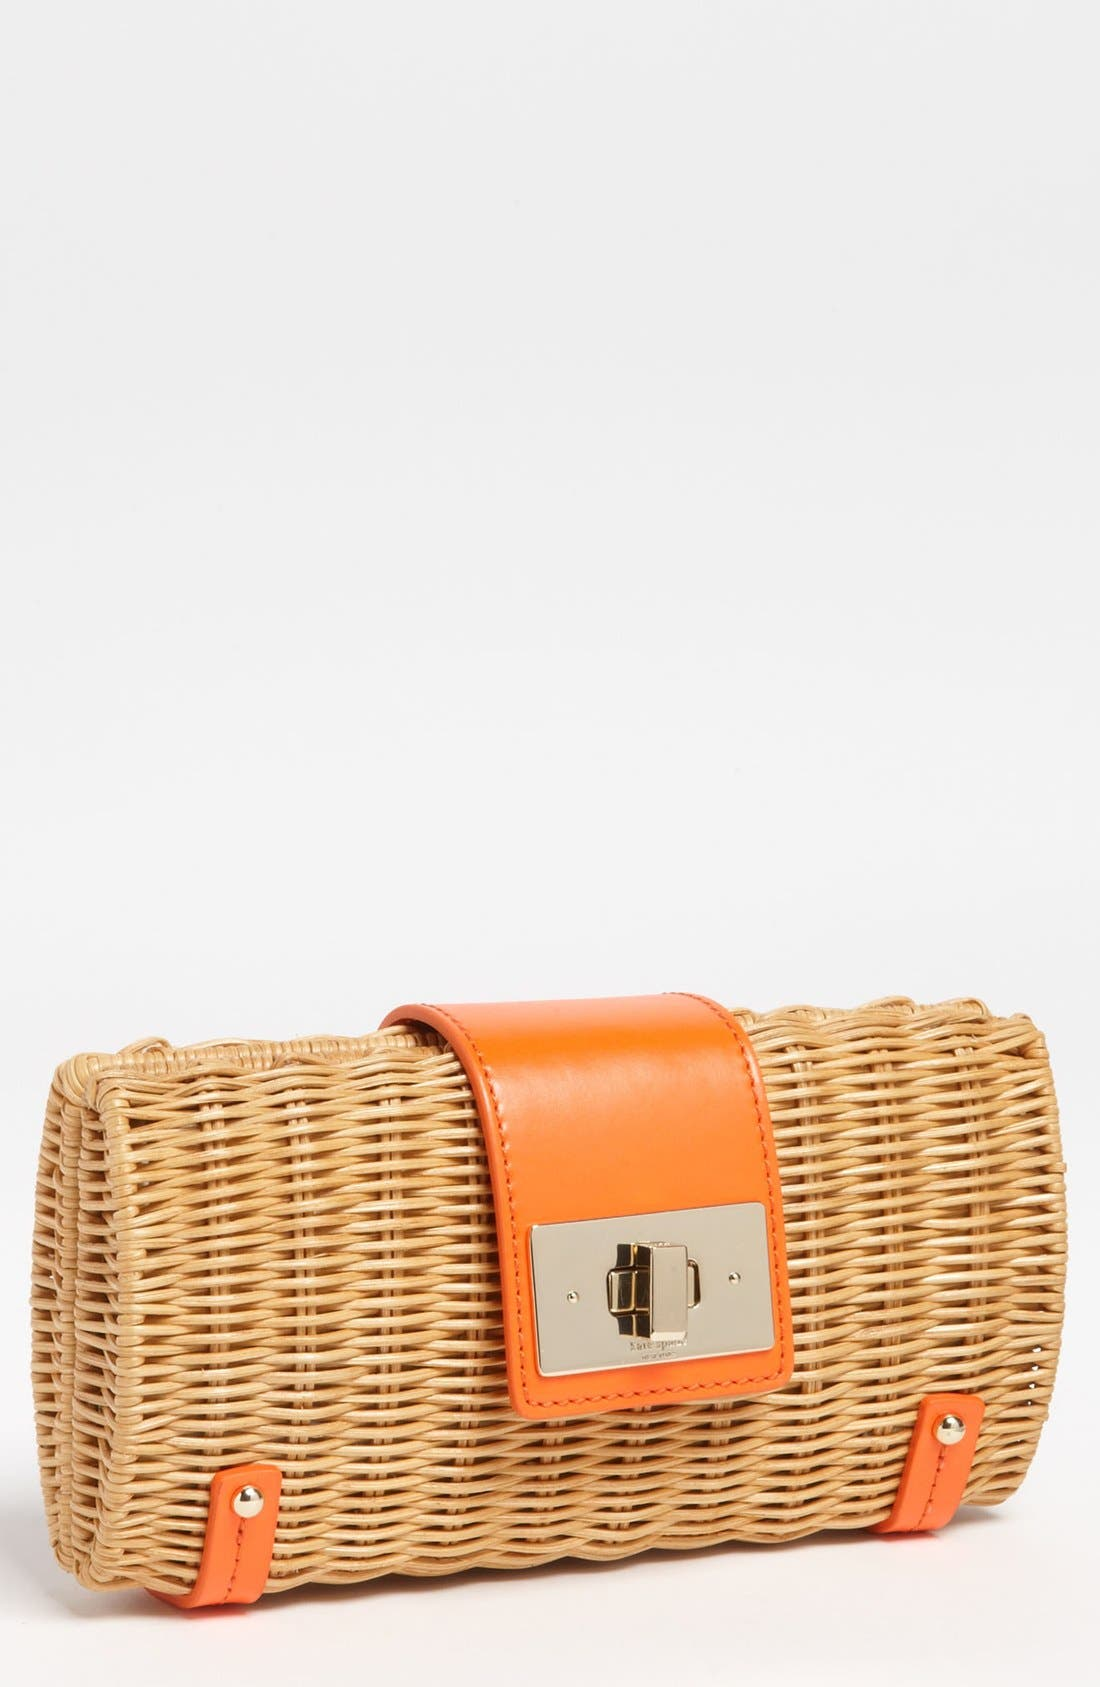 Main Image - kate spade new york 'waverly terrace - jeanetta' clutch